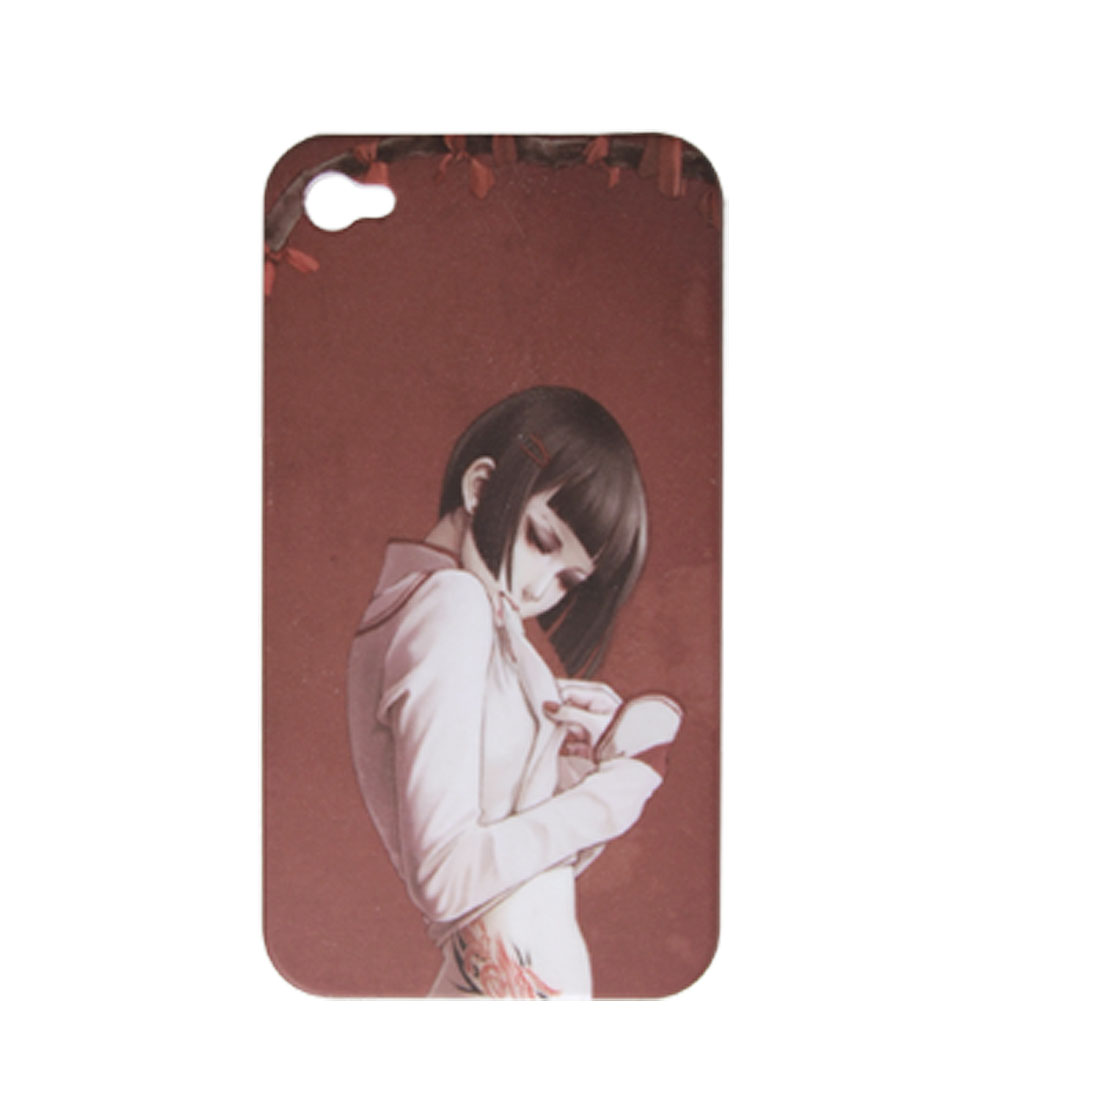 Hard Plastic Rubberized Tattooing Beauty Back Case for iPhone 4 4G